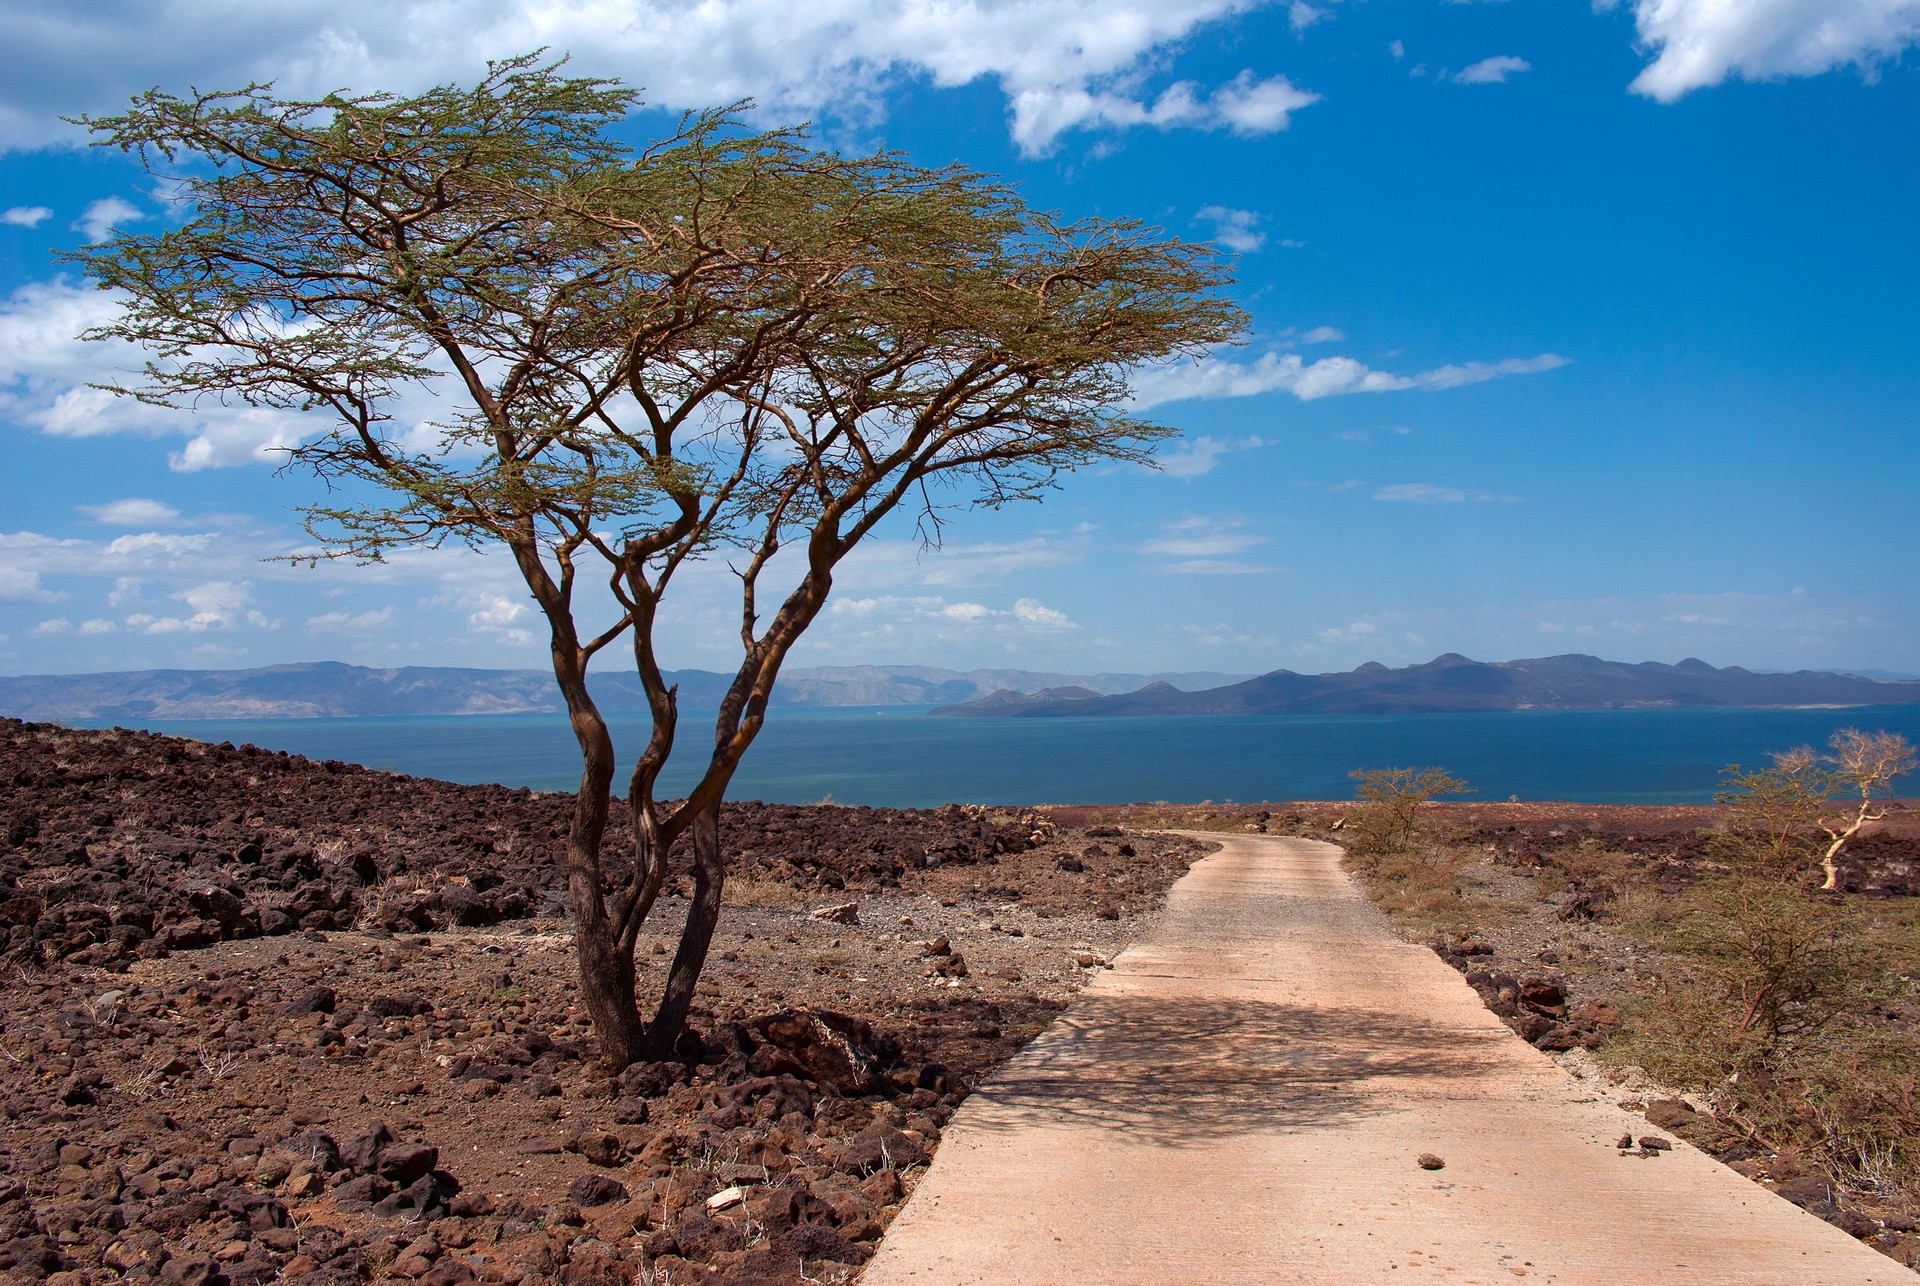 View from road to Lake Turkana